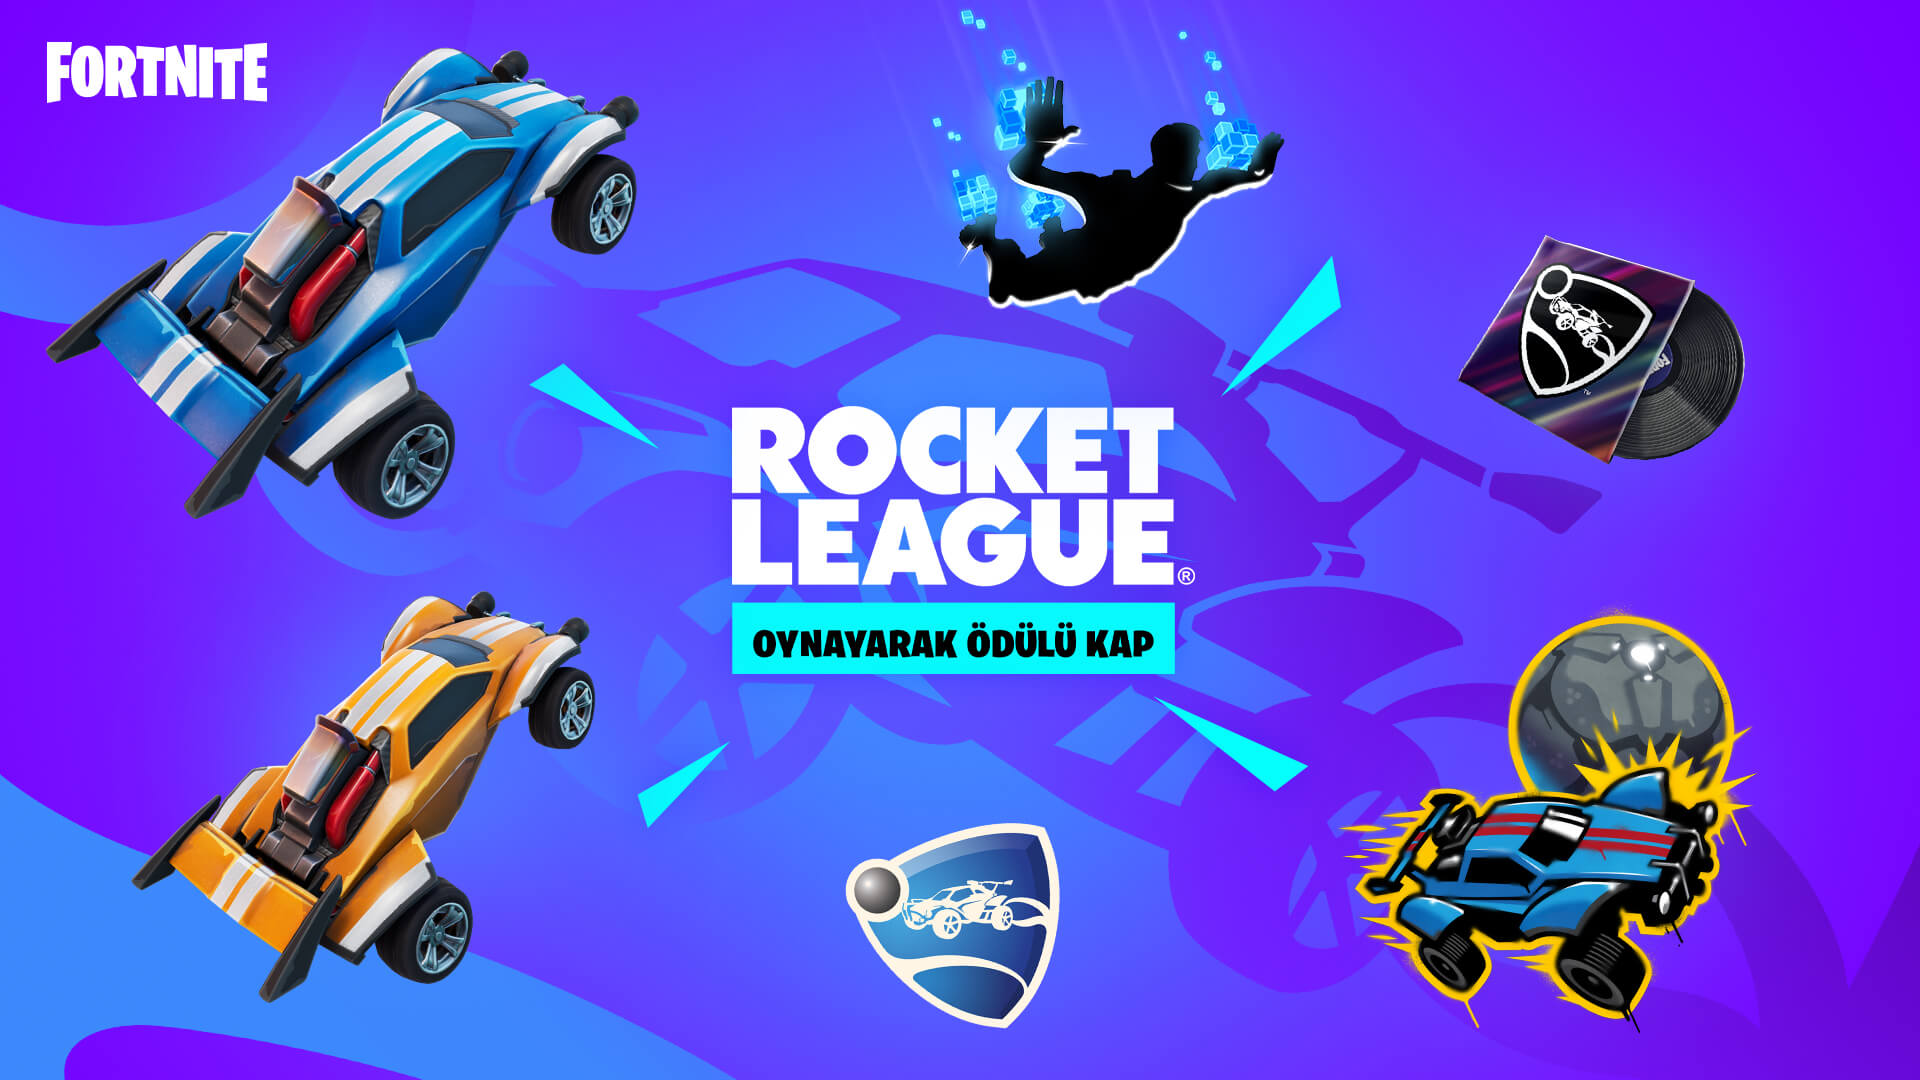 TR Rocket League Fortnite Challenges And Rewards